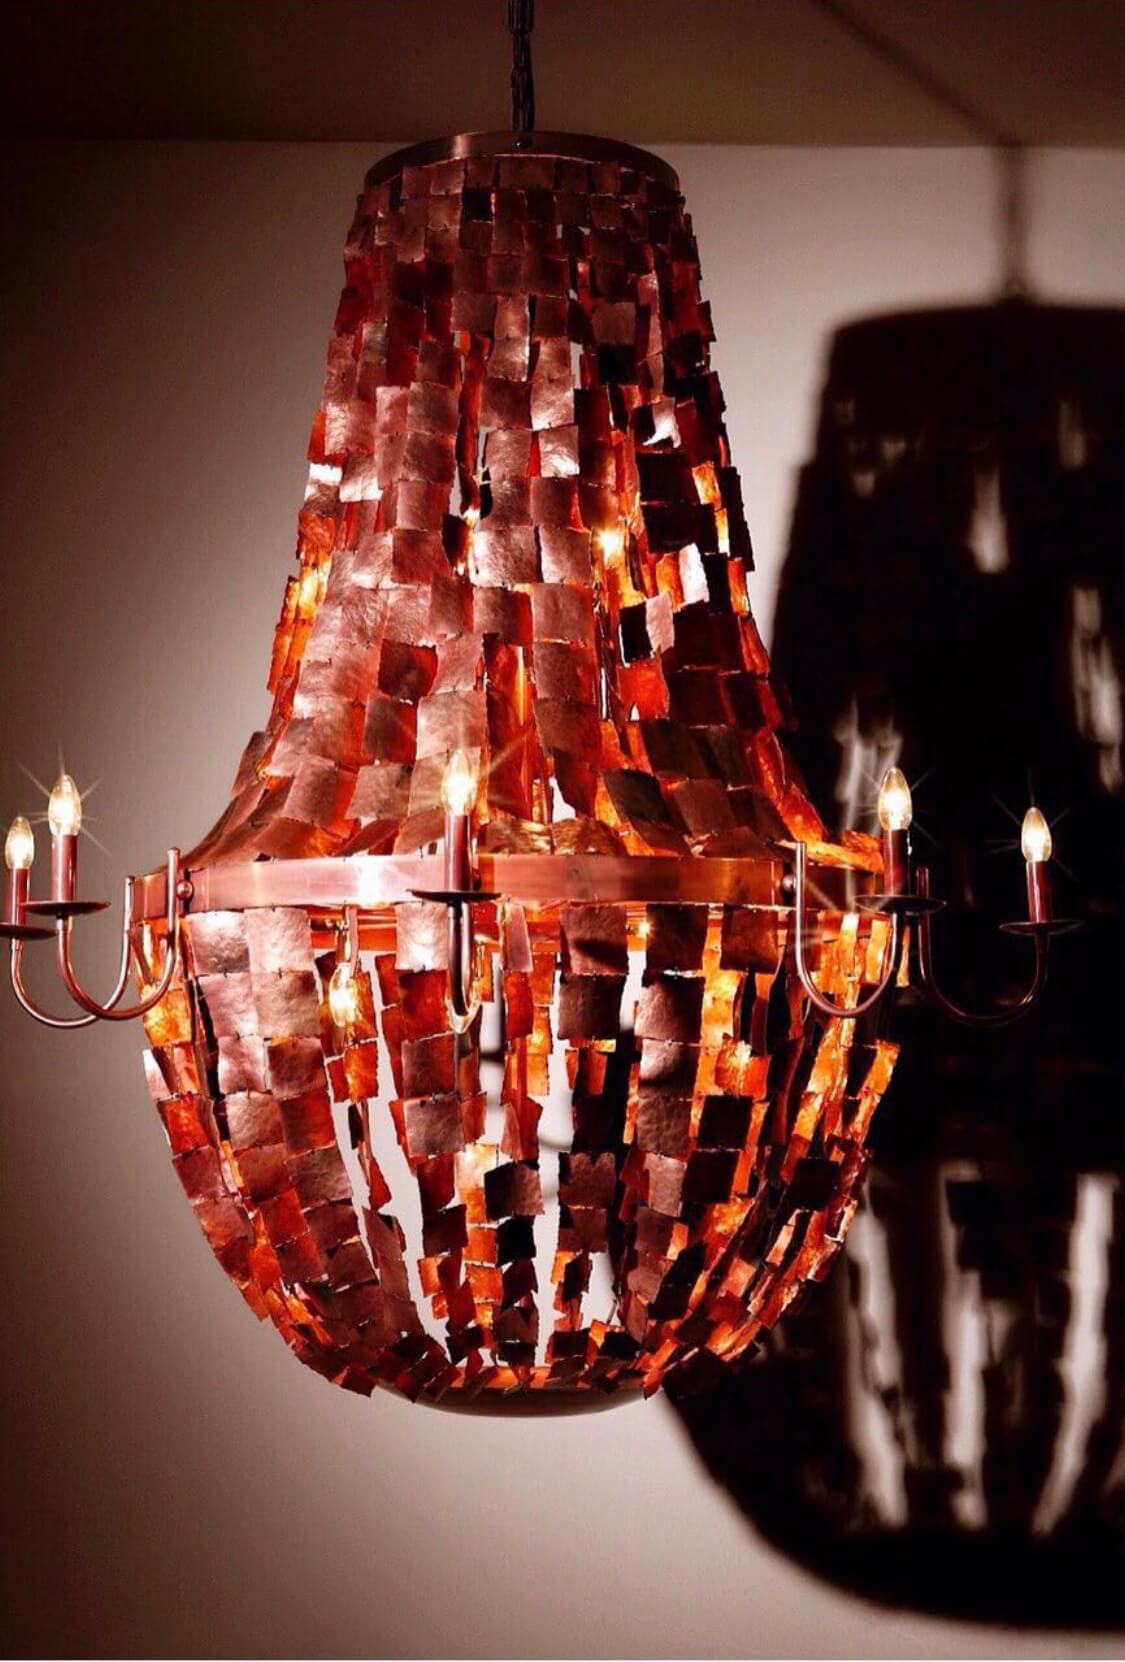 Harem chandelier | Made in Turkey: Curated by Arhan Kayar | STIRworld